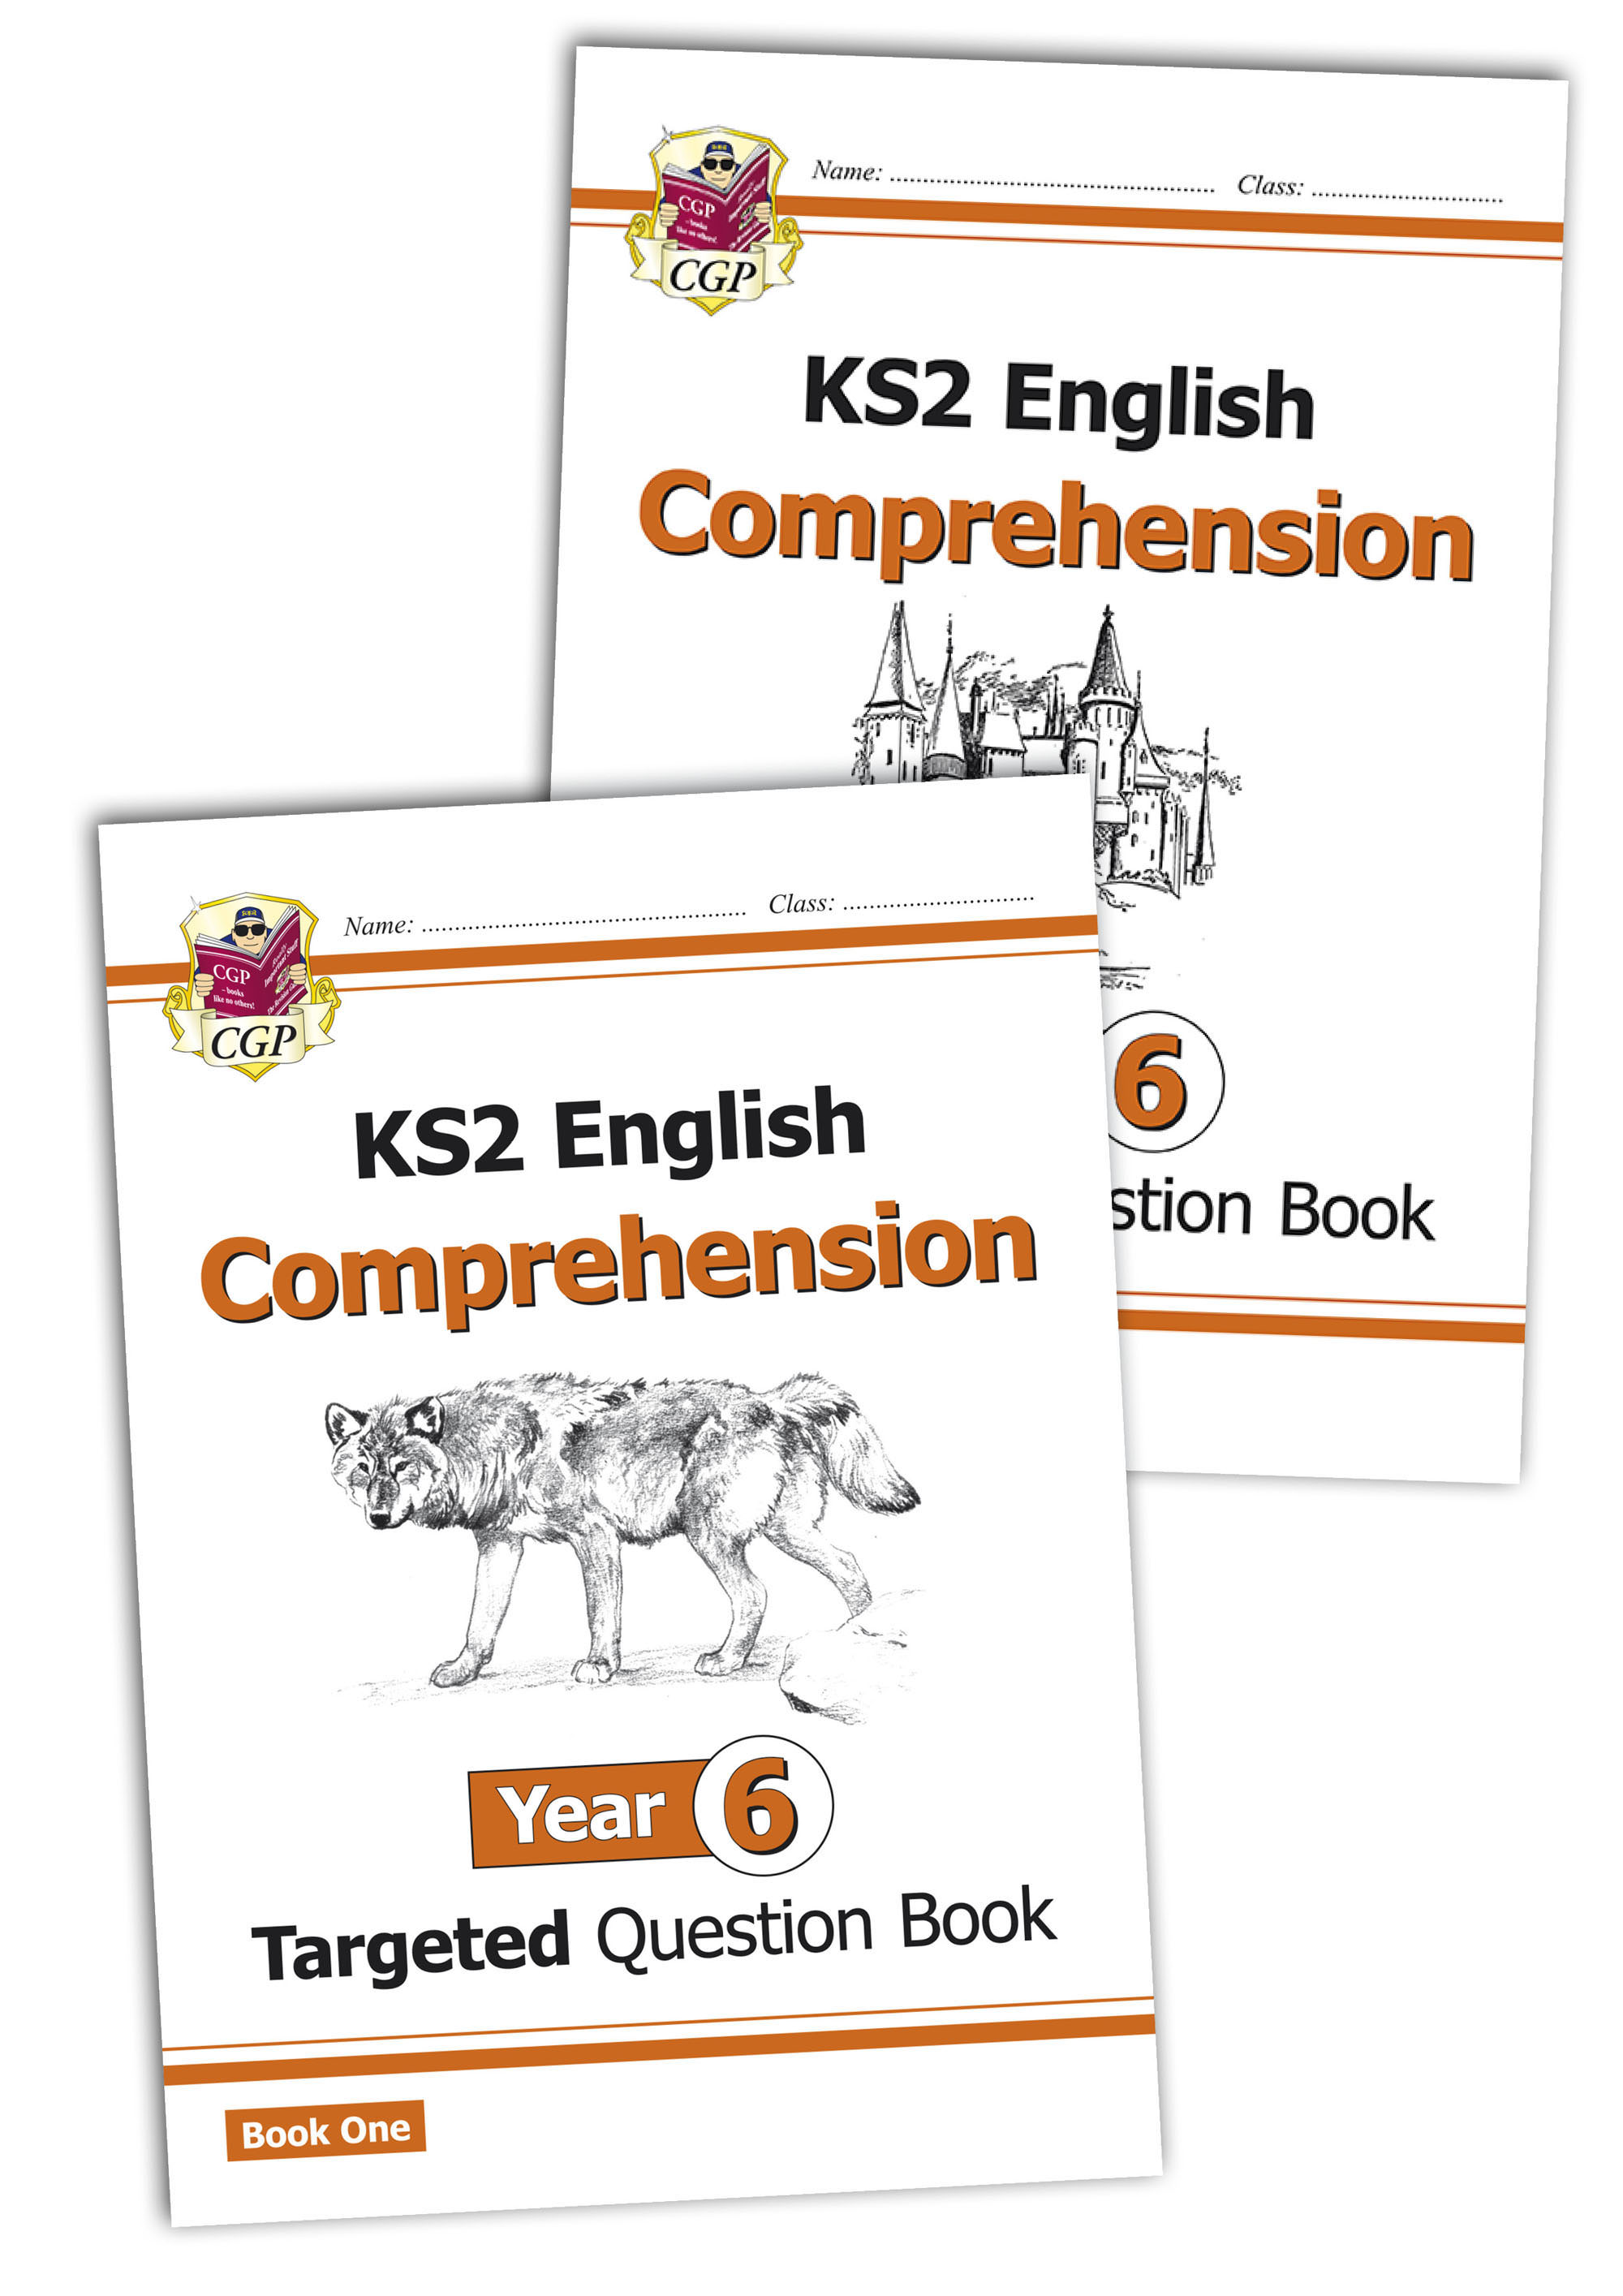 E6CWB21 - KS2 English Targeted Question Book: Year 6 Comprehension - Book 1 & 2 Bundle